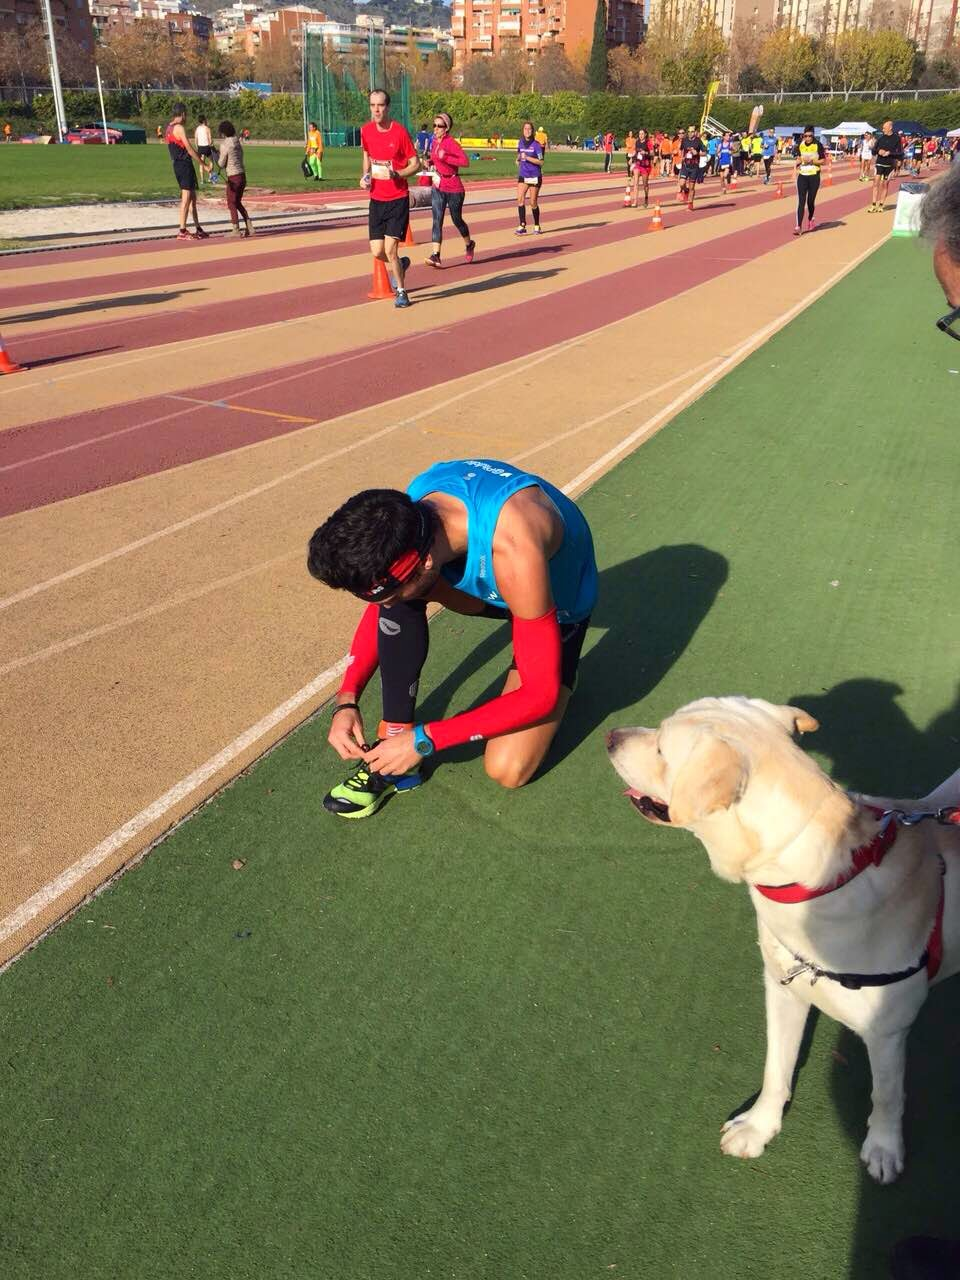 nou pitufollow can drago barcelona atletismo